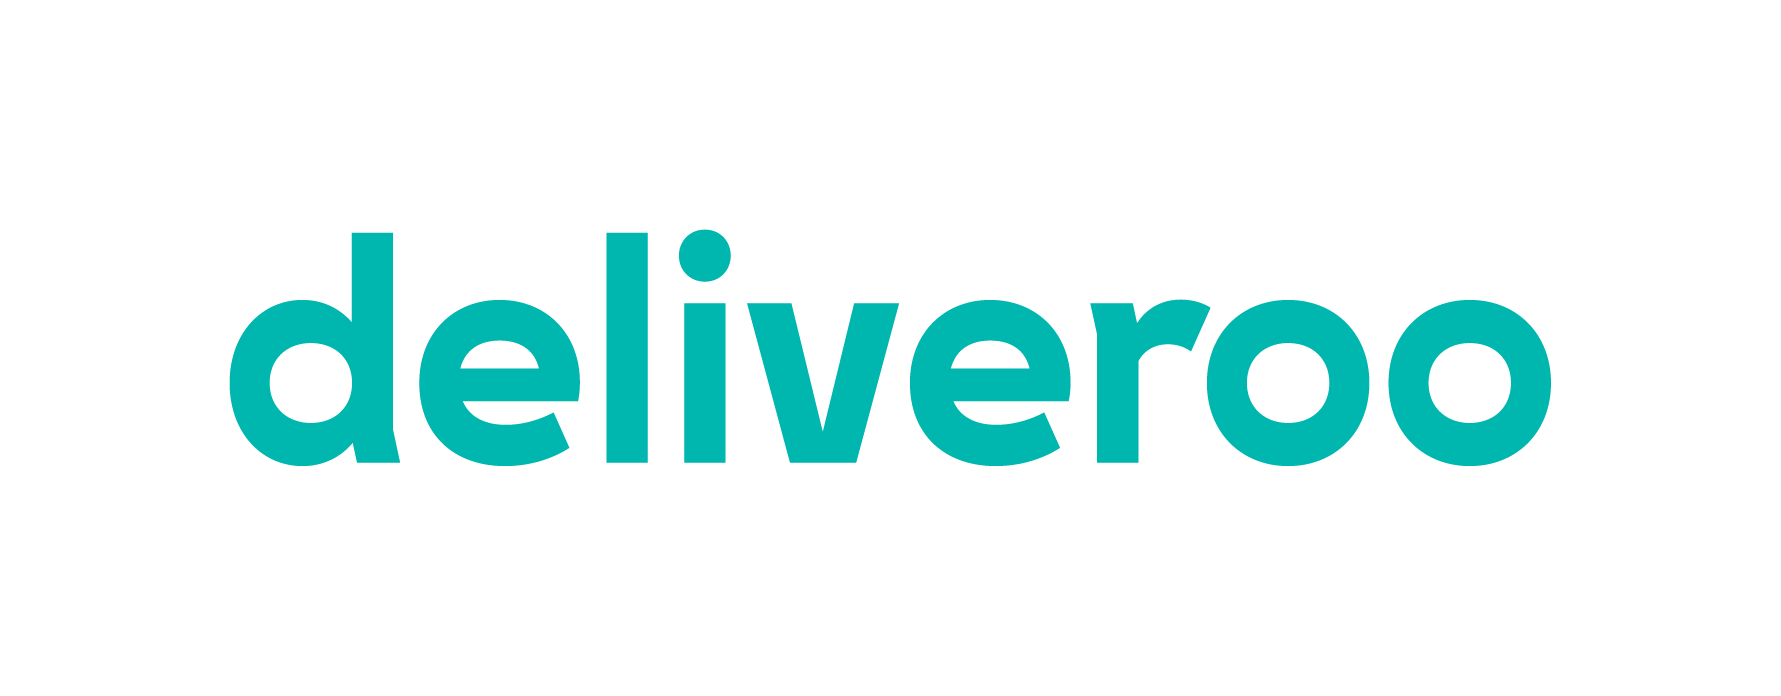 Deliveroo Promotions & Discounts